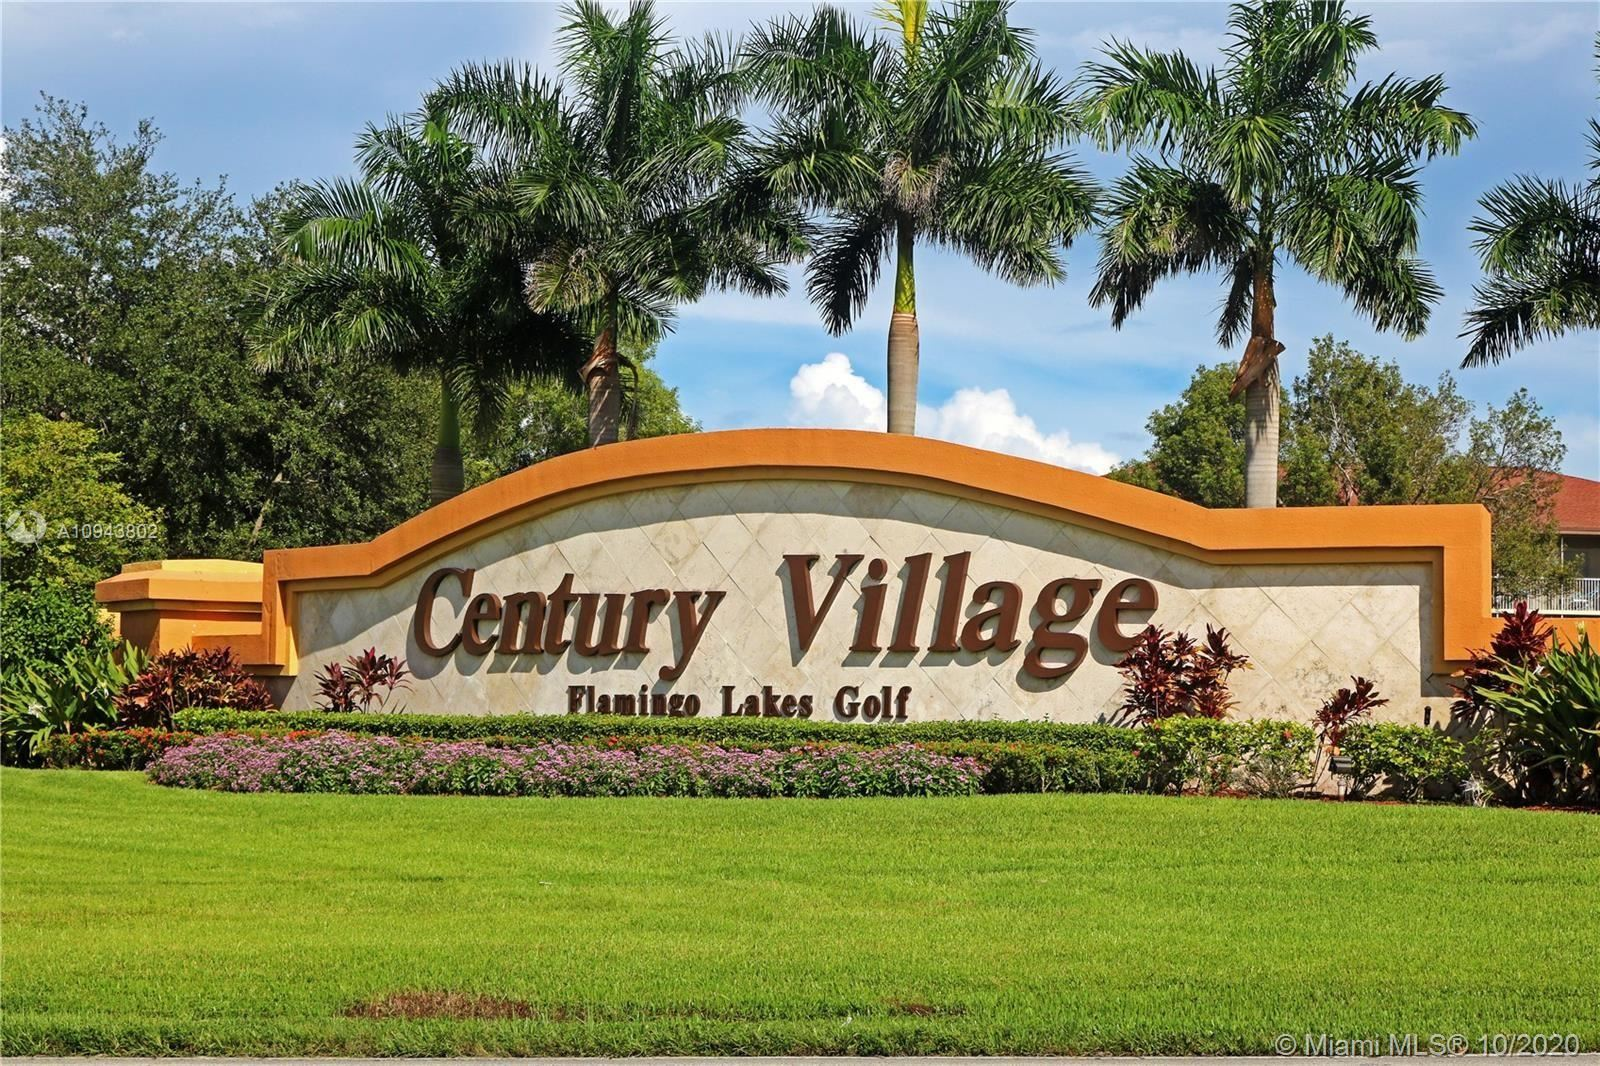 901 SW 138th Ave #109C, Pembroke Pines, FL 33027 - #: A10943802